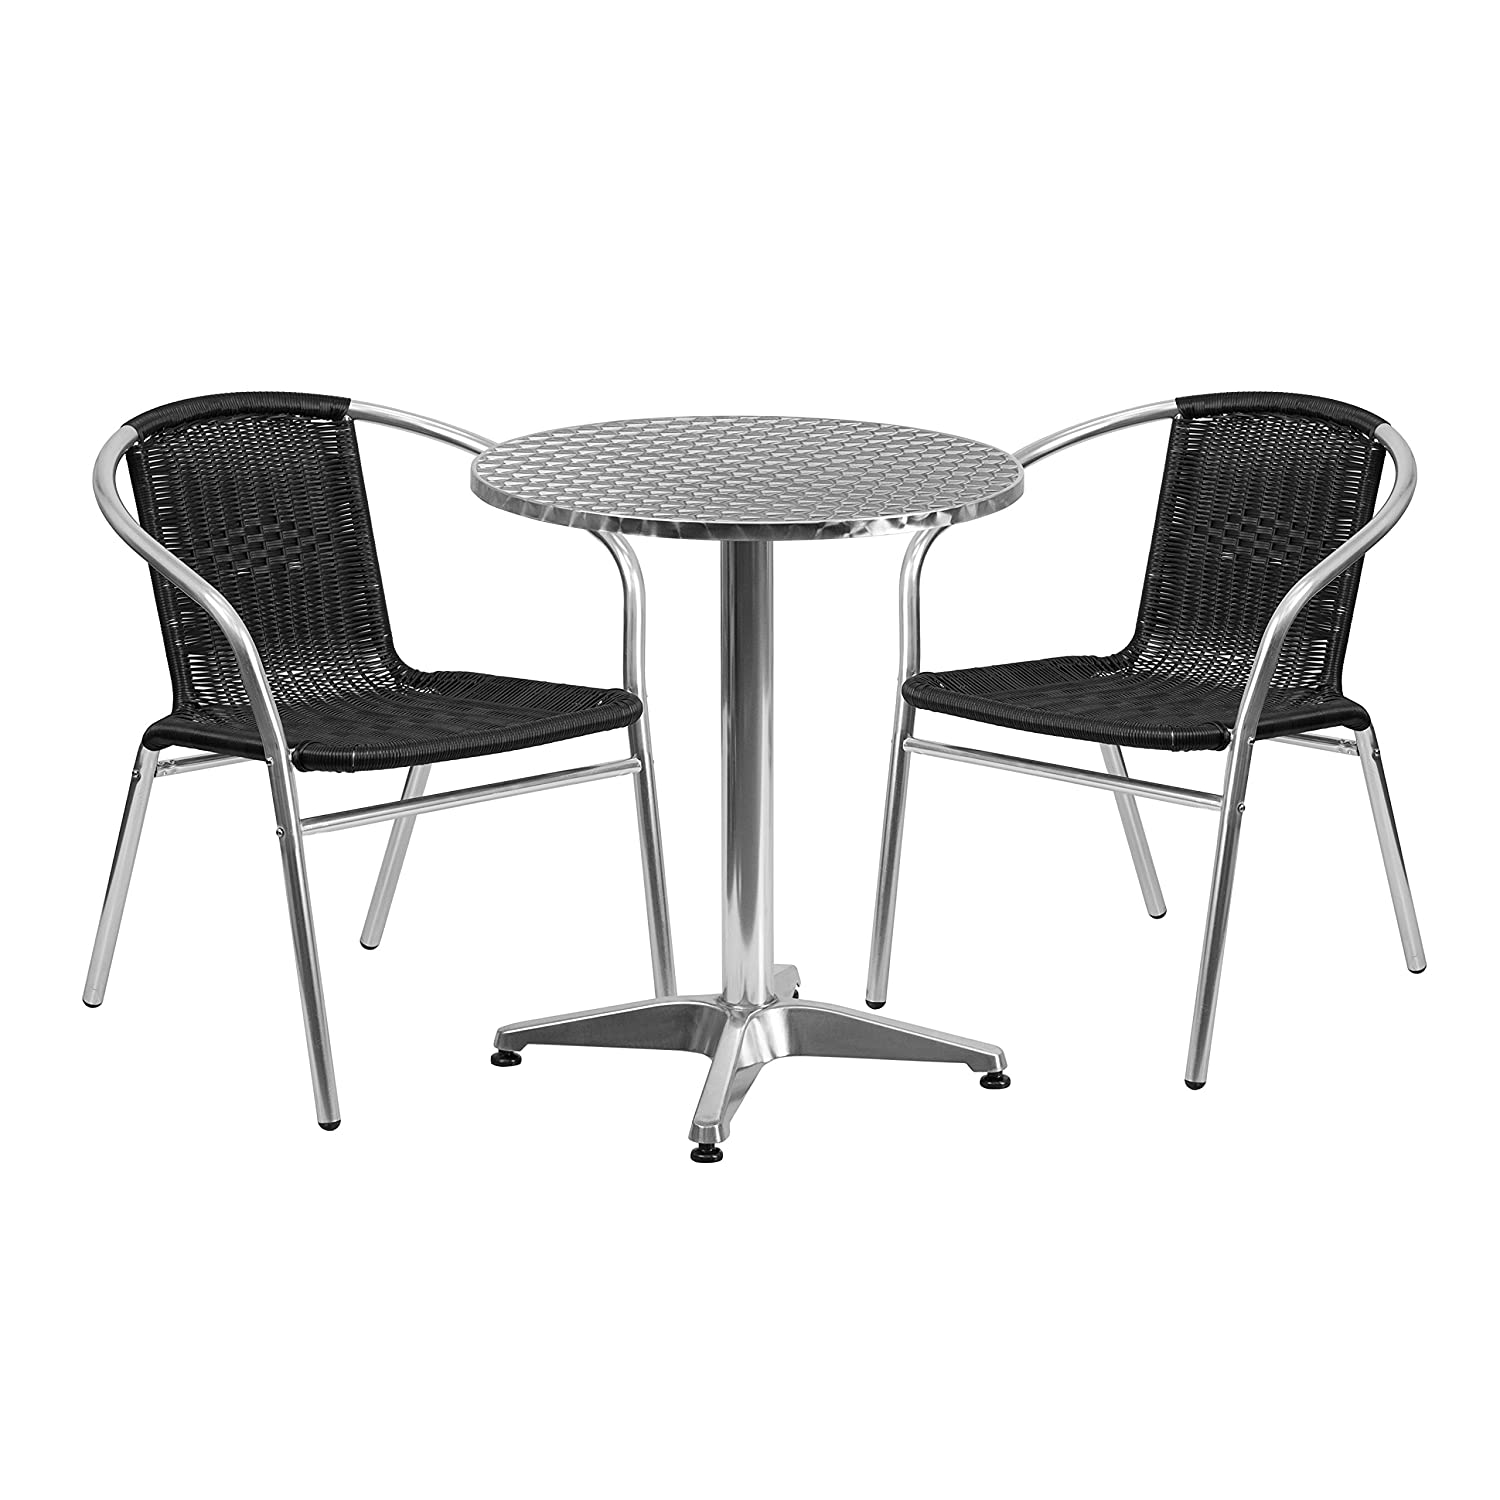 Flash Furniture 23.5'' Round Aluminum Indoor-Outdoor Table Set with 2 Black Rattan Chairs TLH-ALUM-24RD-020BKCHR2-GG